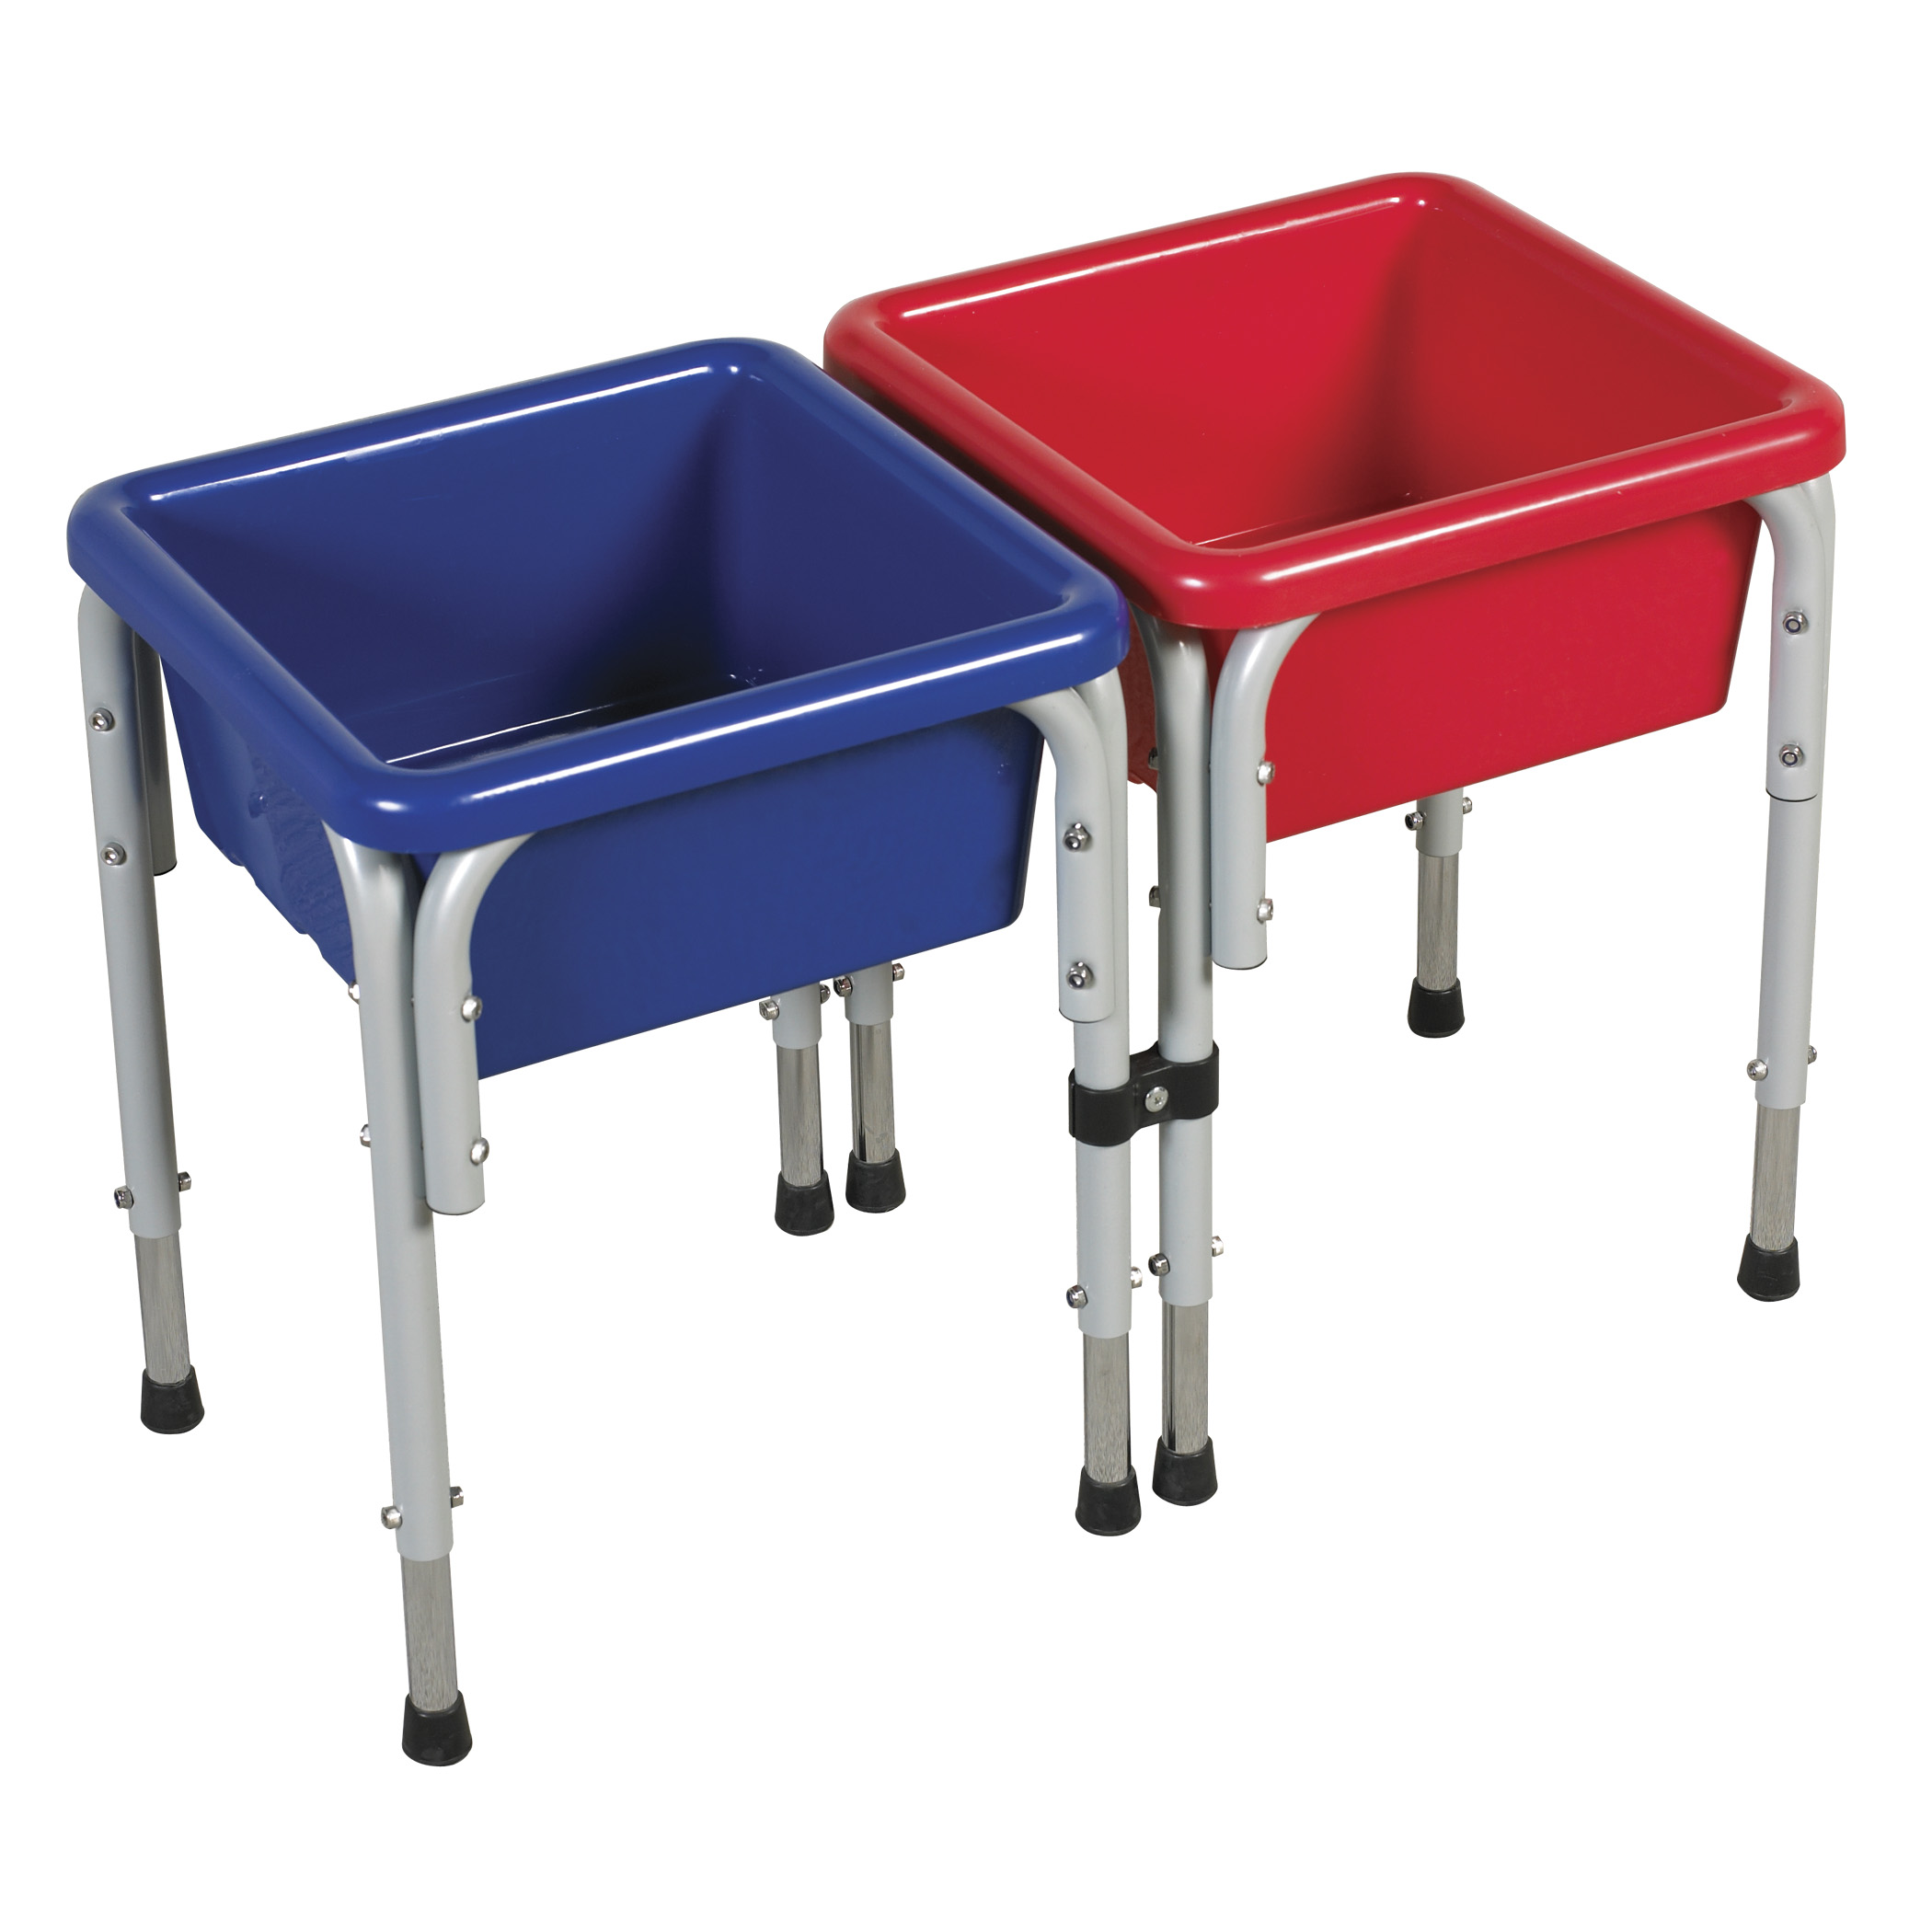 Offex 2 Station Square Sand & Water Table with Lids